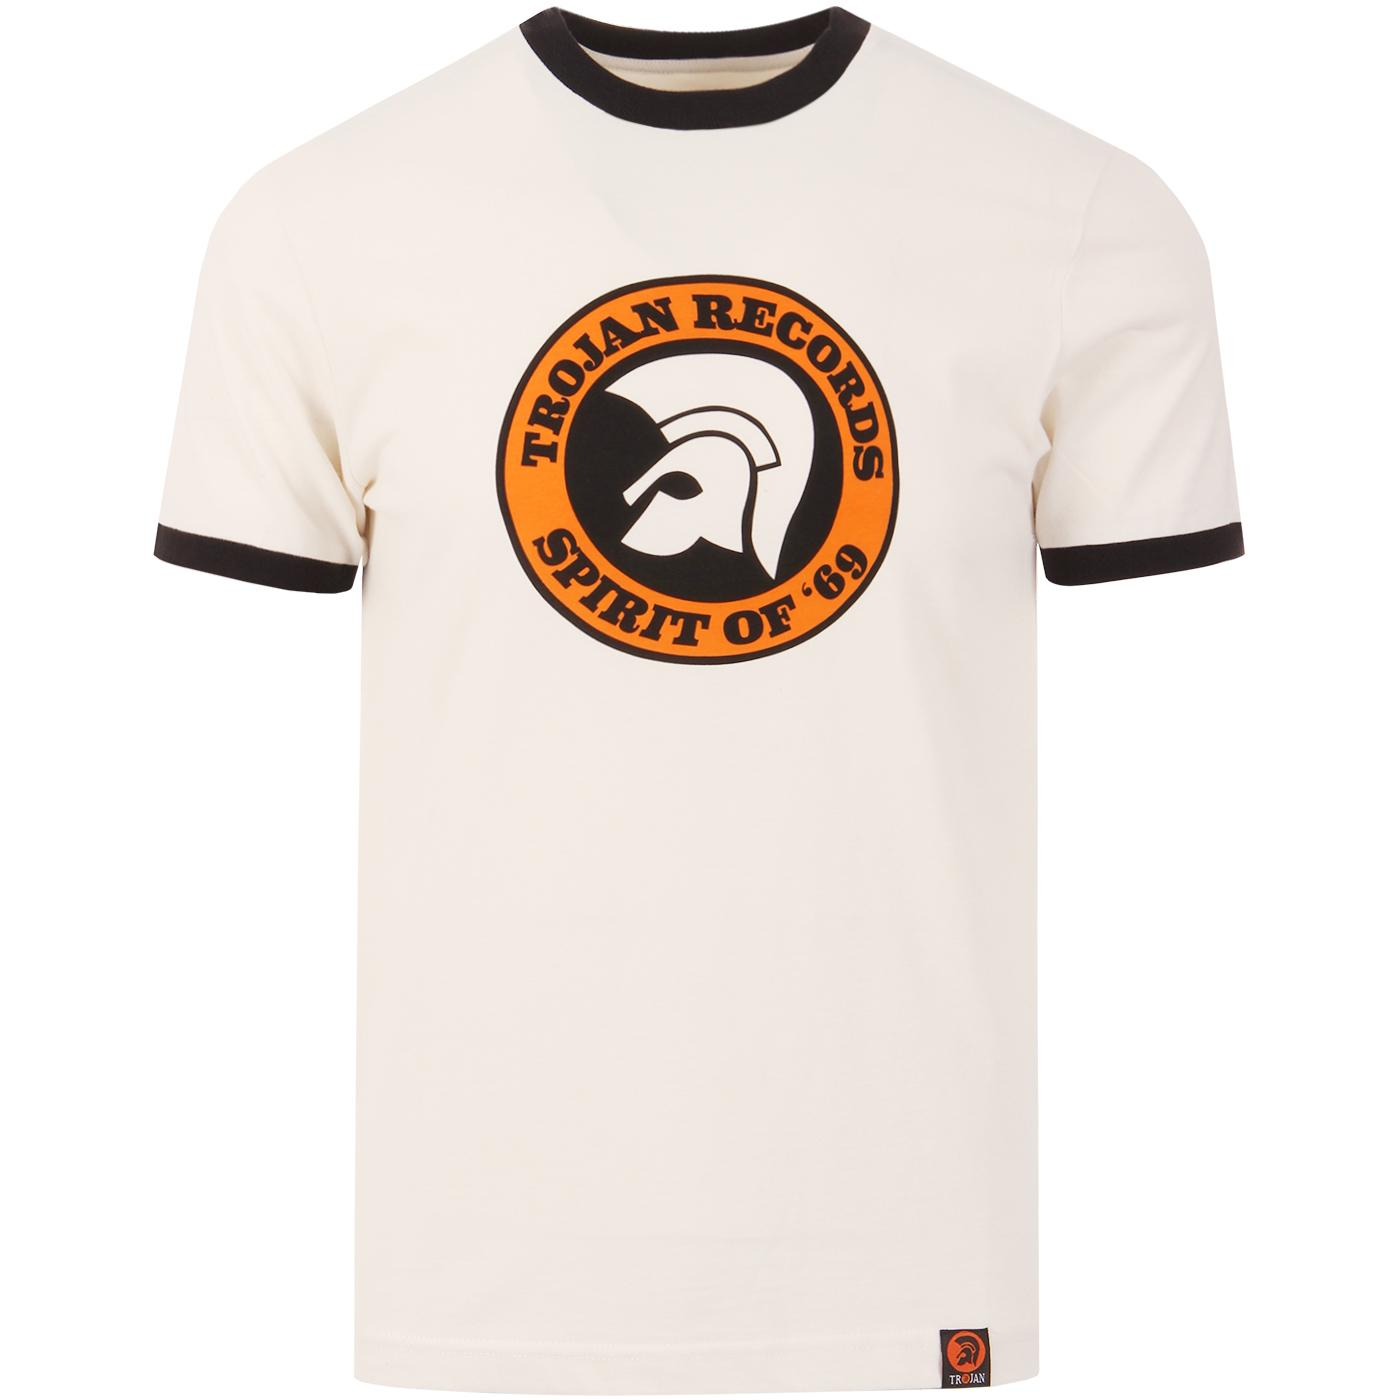 TROJAN RECORDS Mens Mod Spirit Of '69 Ringer Tee E